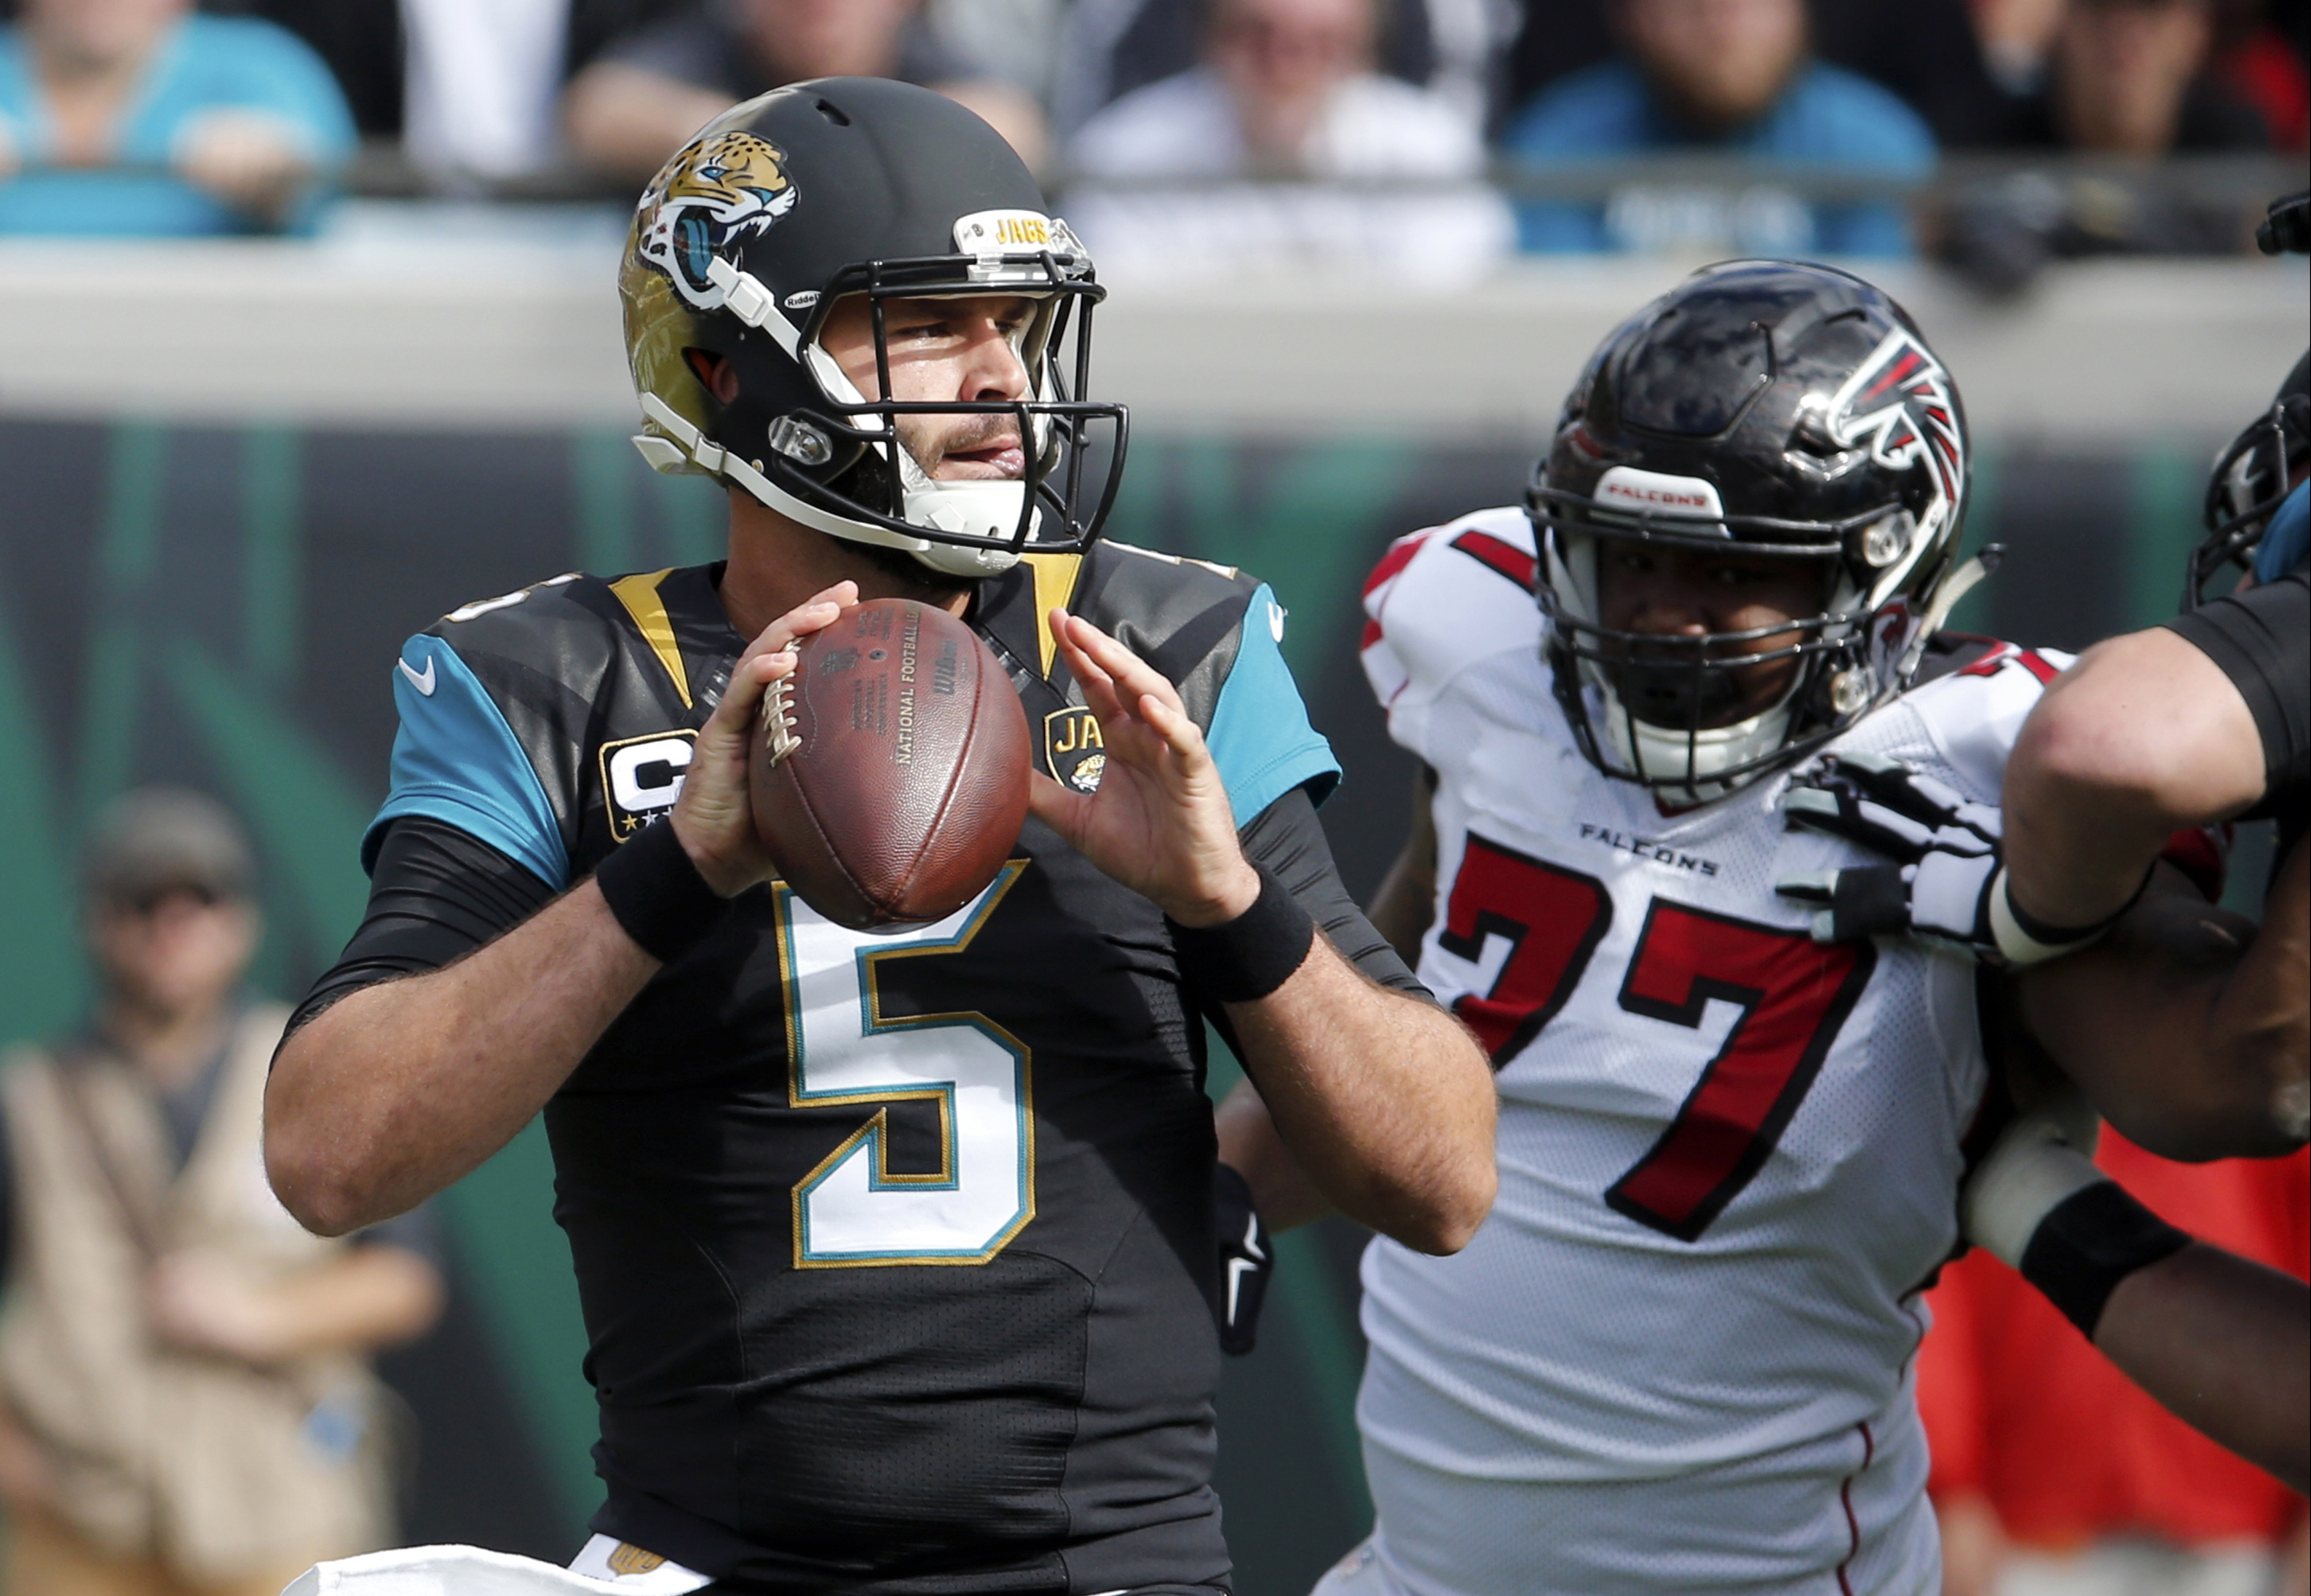 FILE - In this Dec. 20, 2015, file photo, Jacksonville Jaguars quarterback Blake Bortles (5) looks for a receiver as he is pressured by Atlanta Falcons defensive tackle Ra'Shede Hageman (77) during the first half of an NFL football game in Jacksonville, F